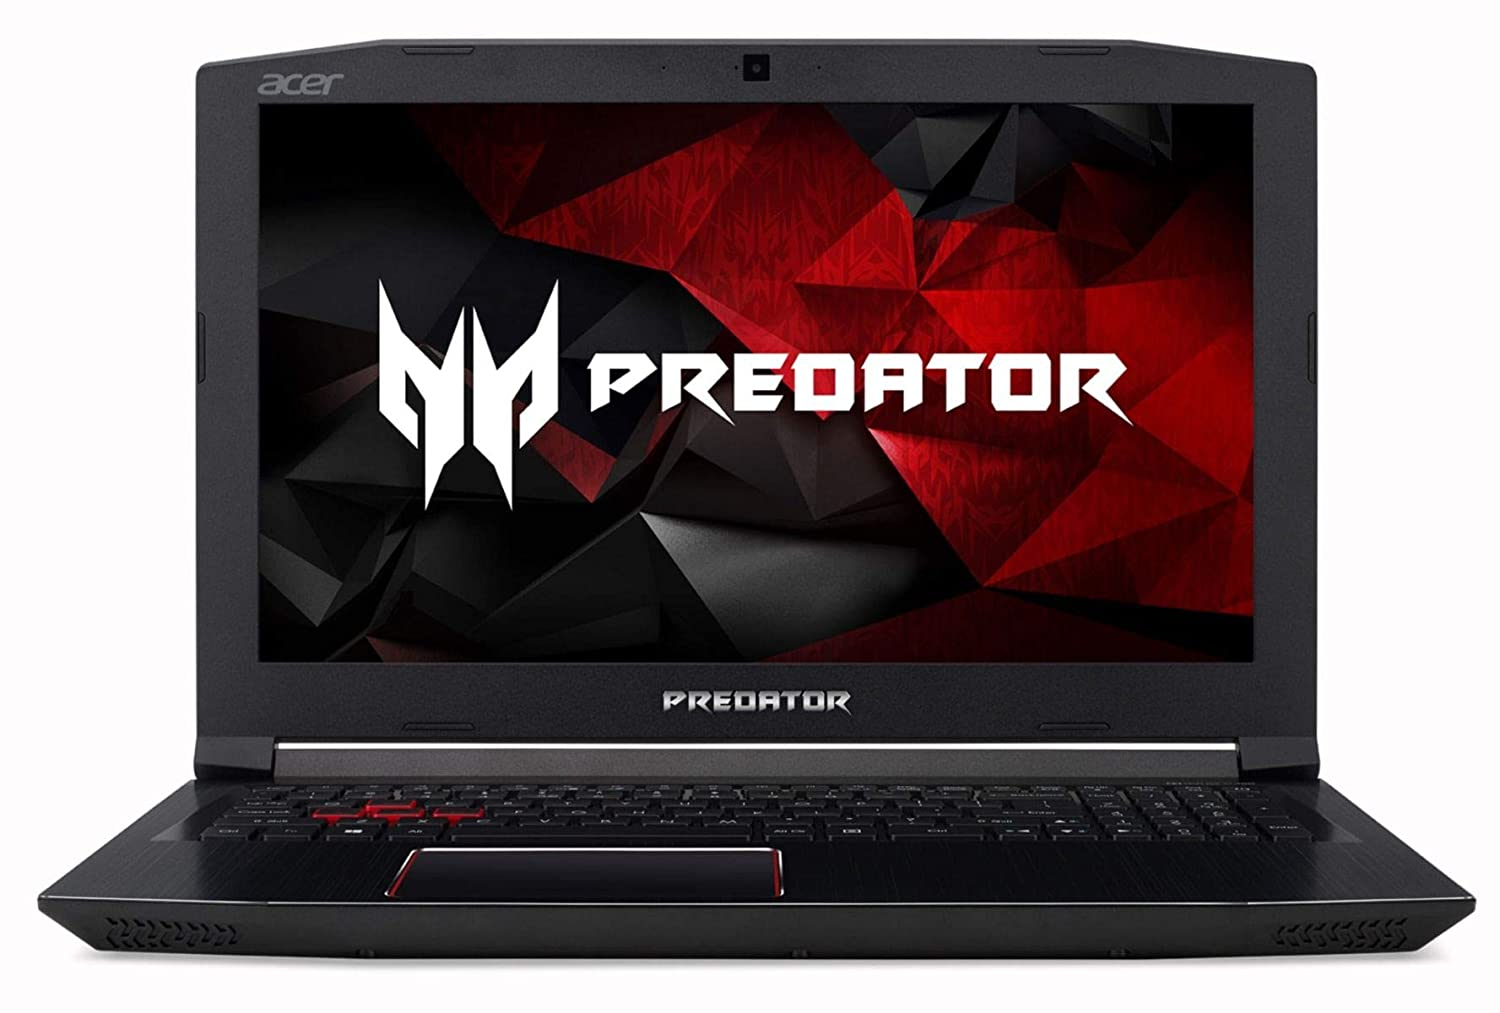 Acer Predator best Gaming Laptops Under 1 Lakh